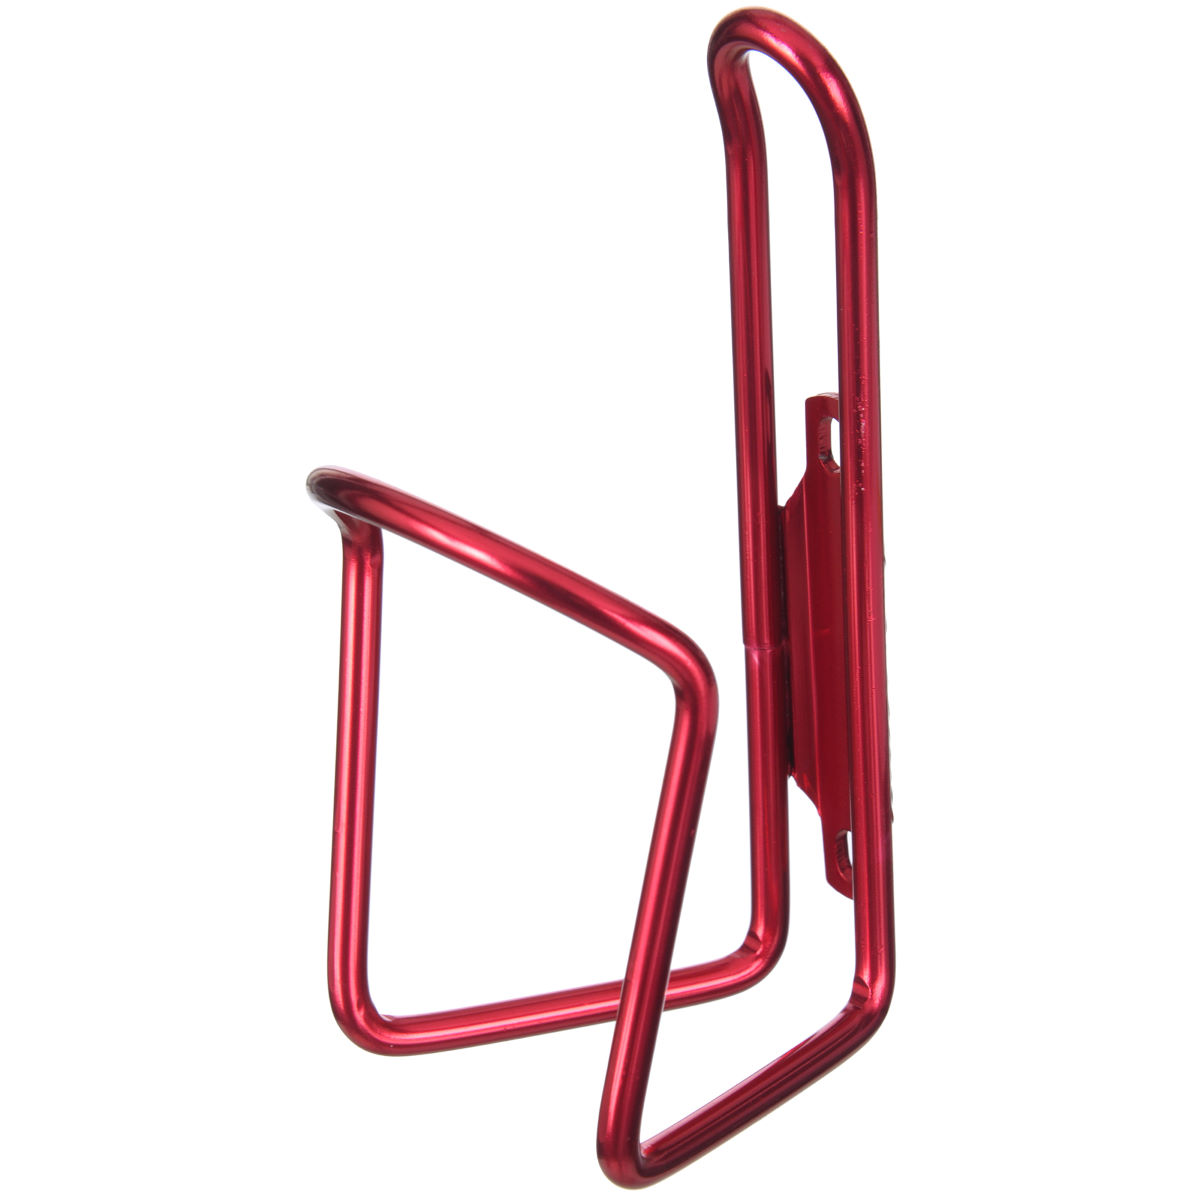 Porte-bidon LifeLine (alliage) - Taille unique Rouge Porte-bidons